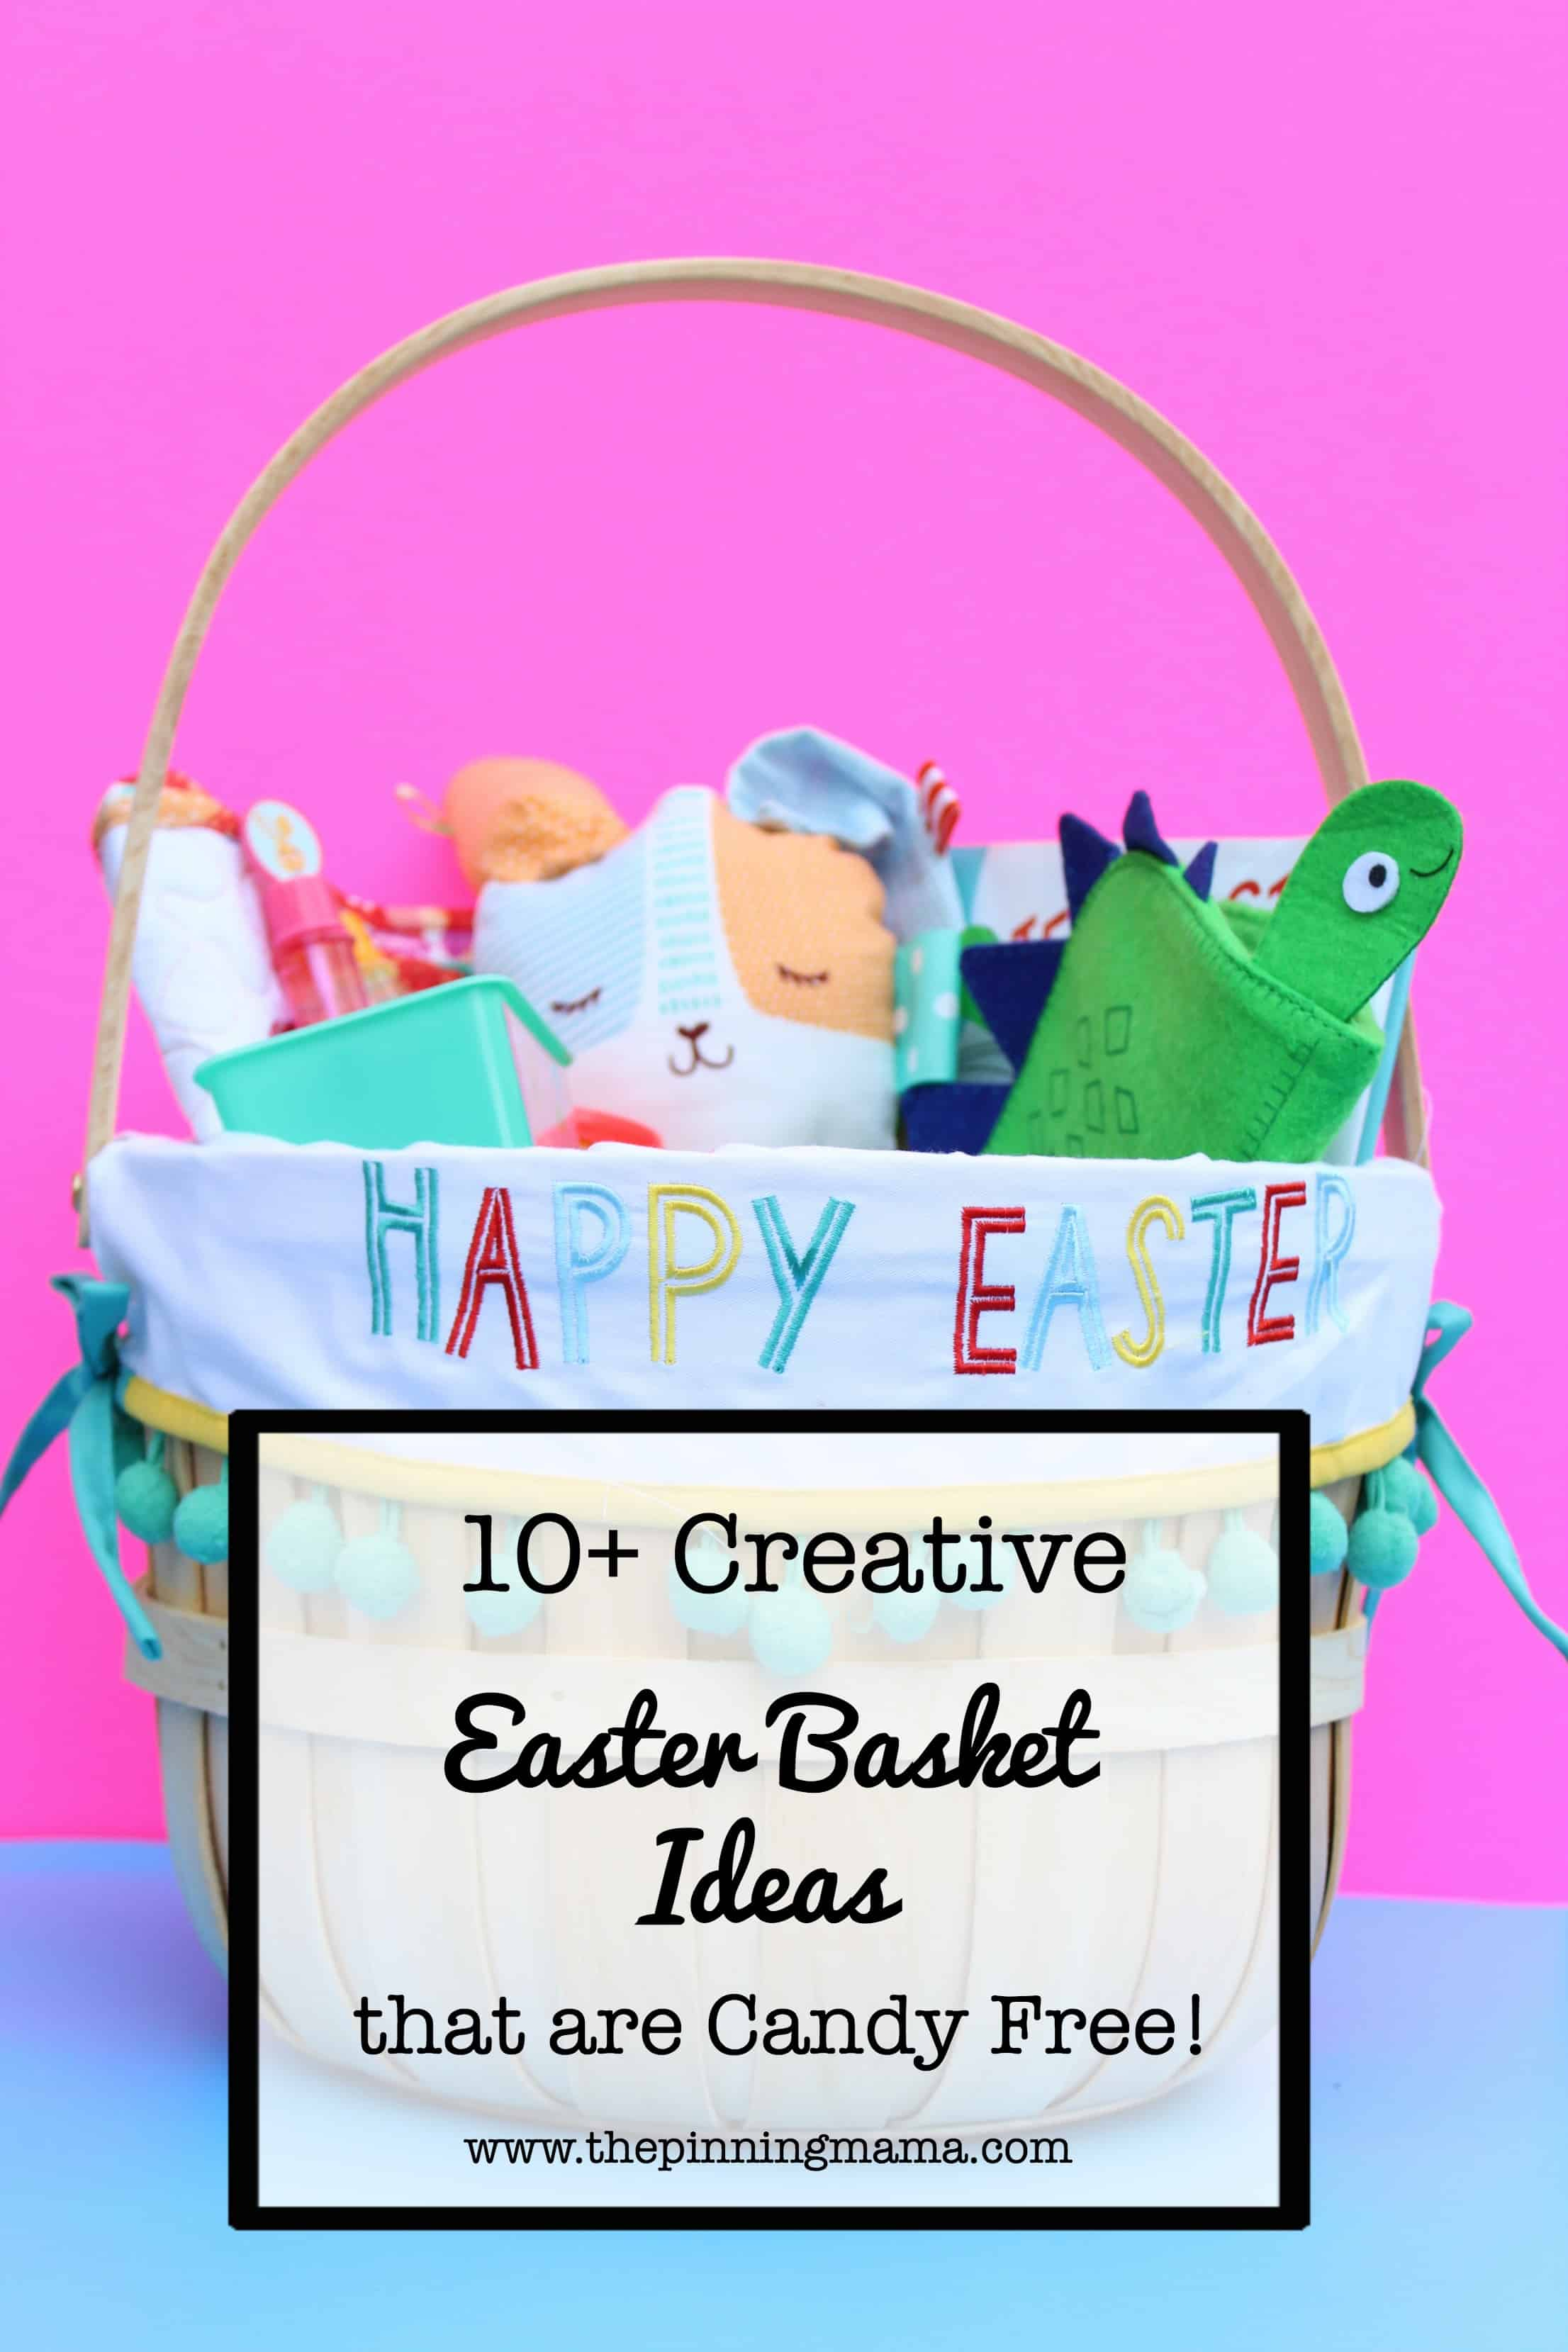 10 creative ideas for a candy free easter basket the pinning mama 10 creative ideas for a candy free easter basket negle Gallery